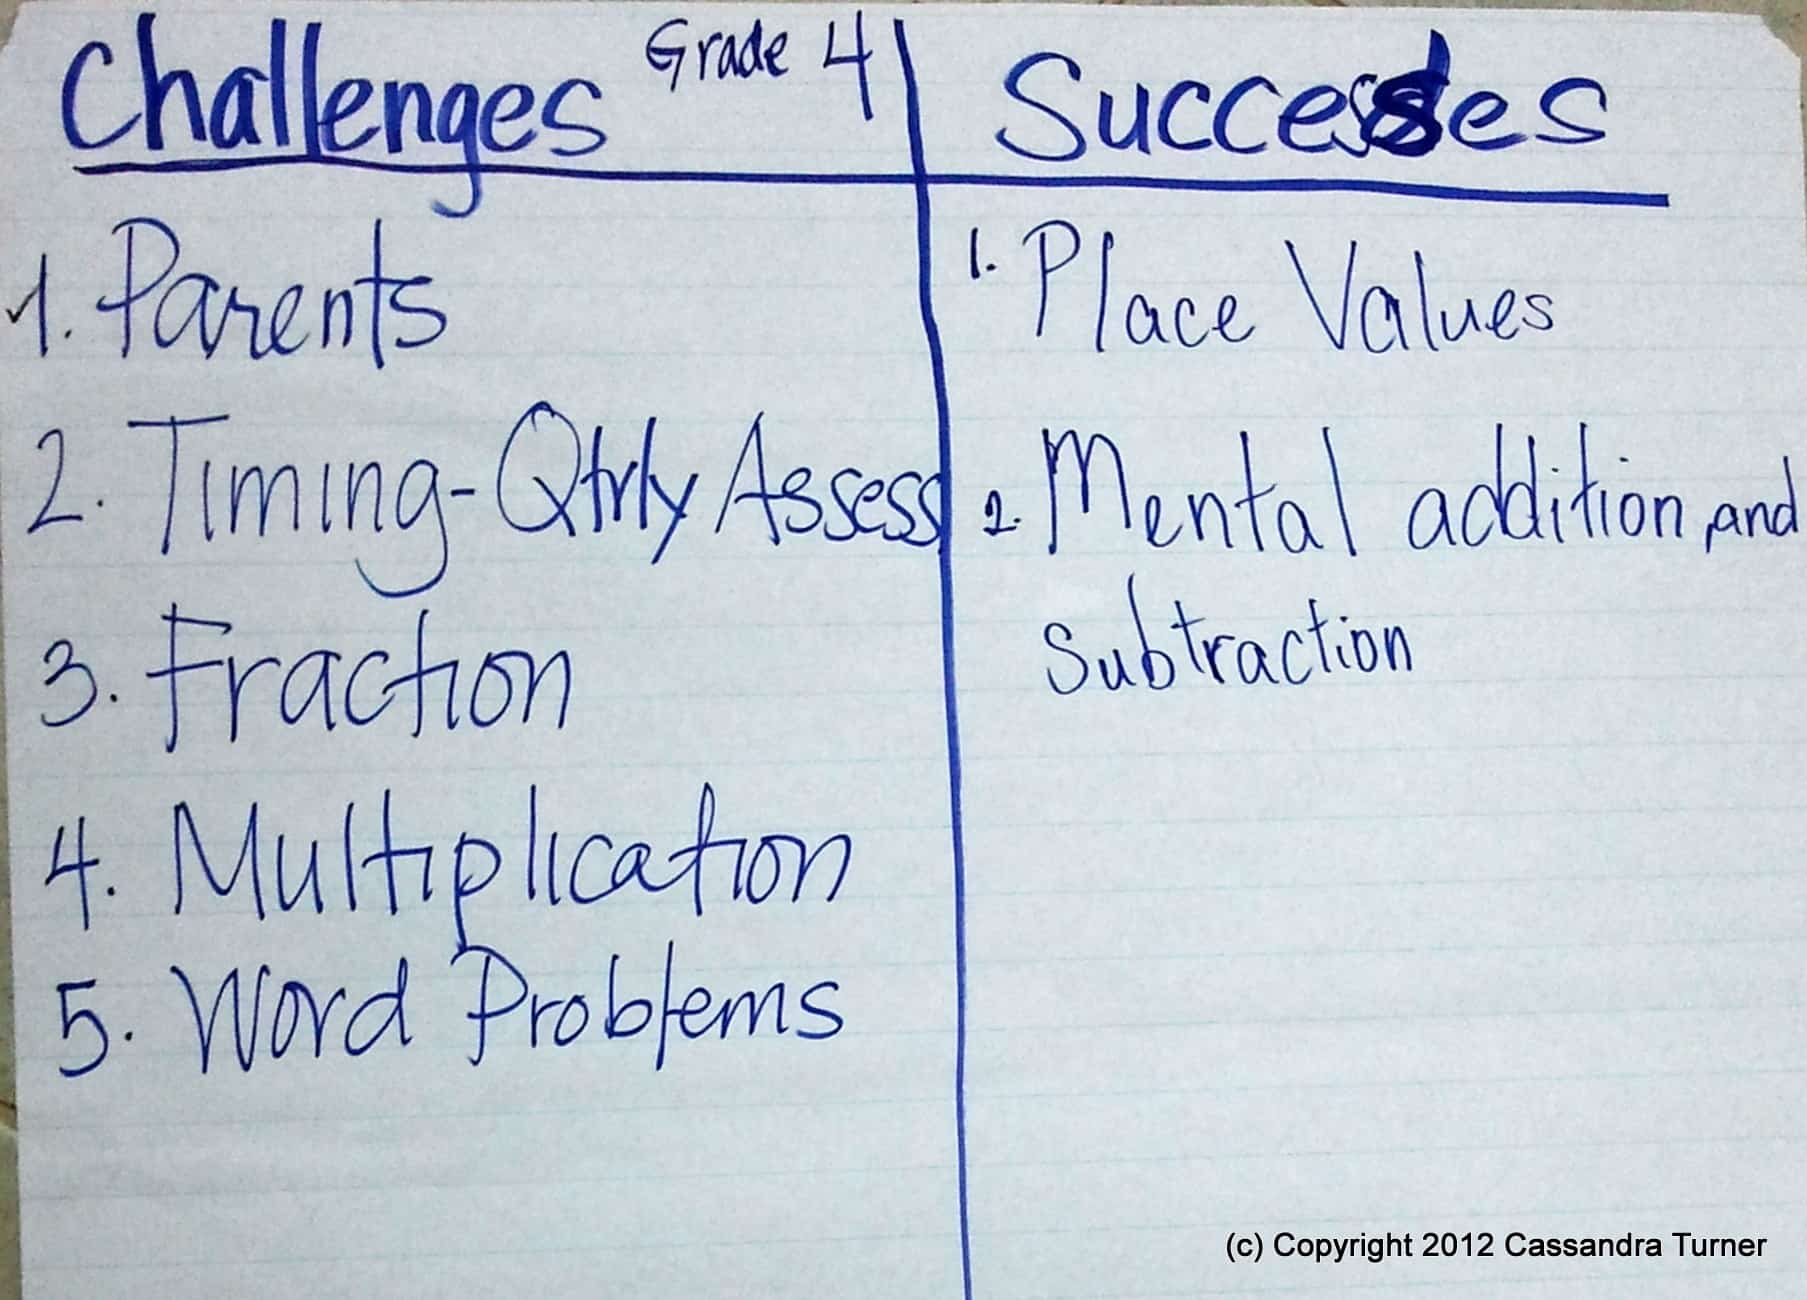 Adopting Singapore Math - Challenges and Successes | SingaporeMathSource